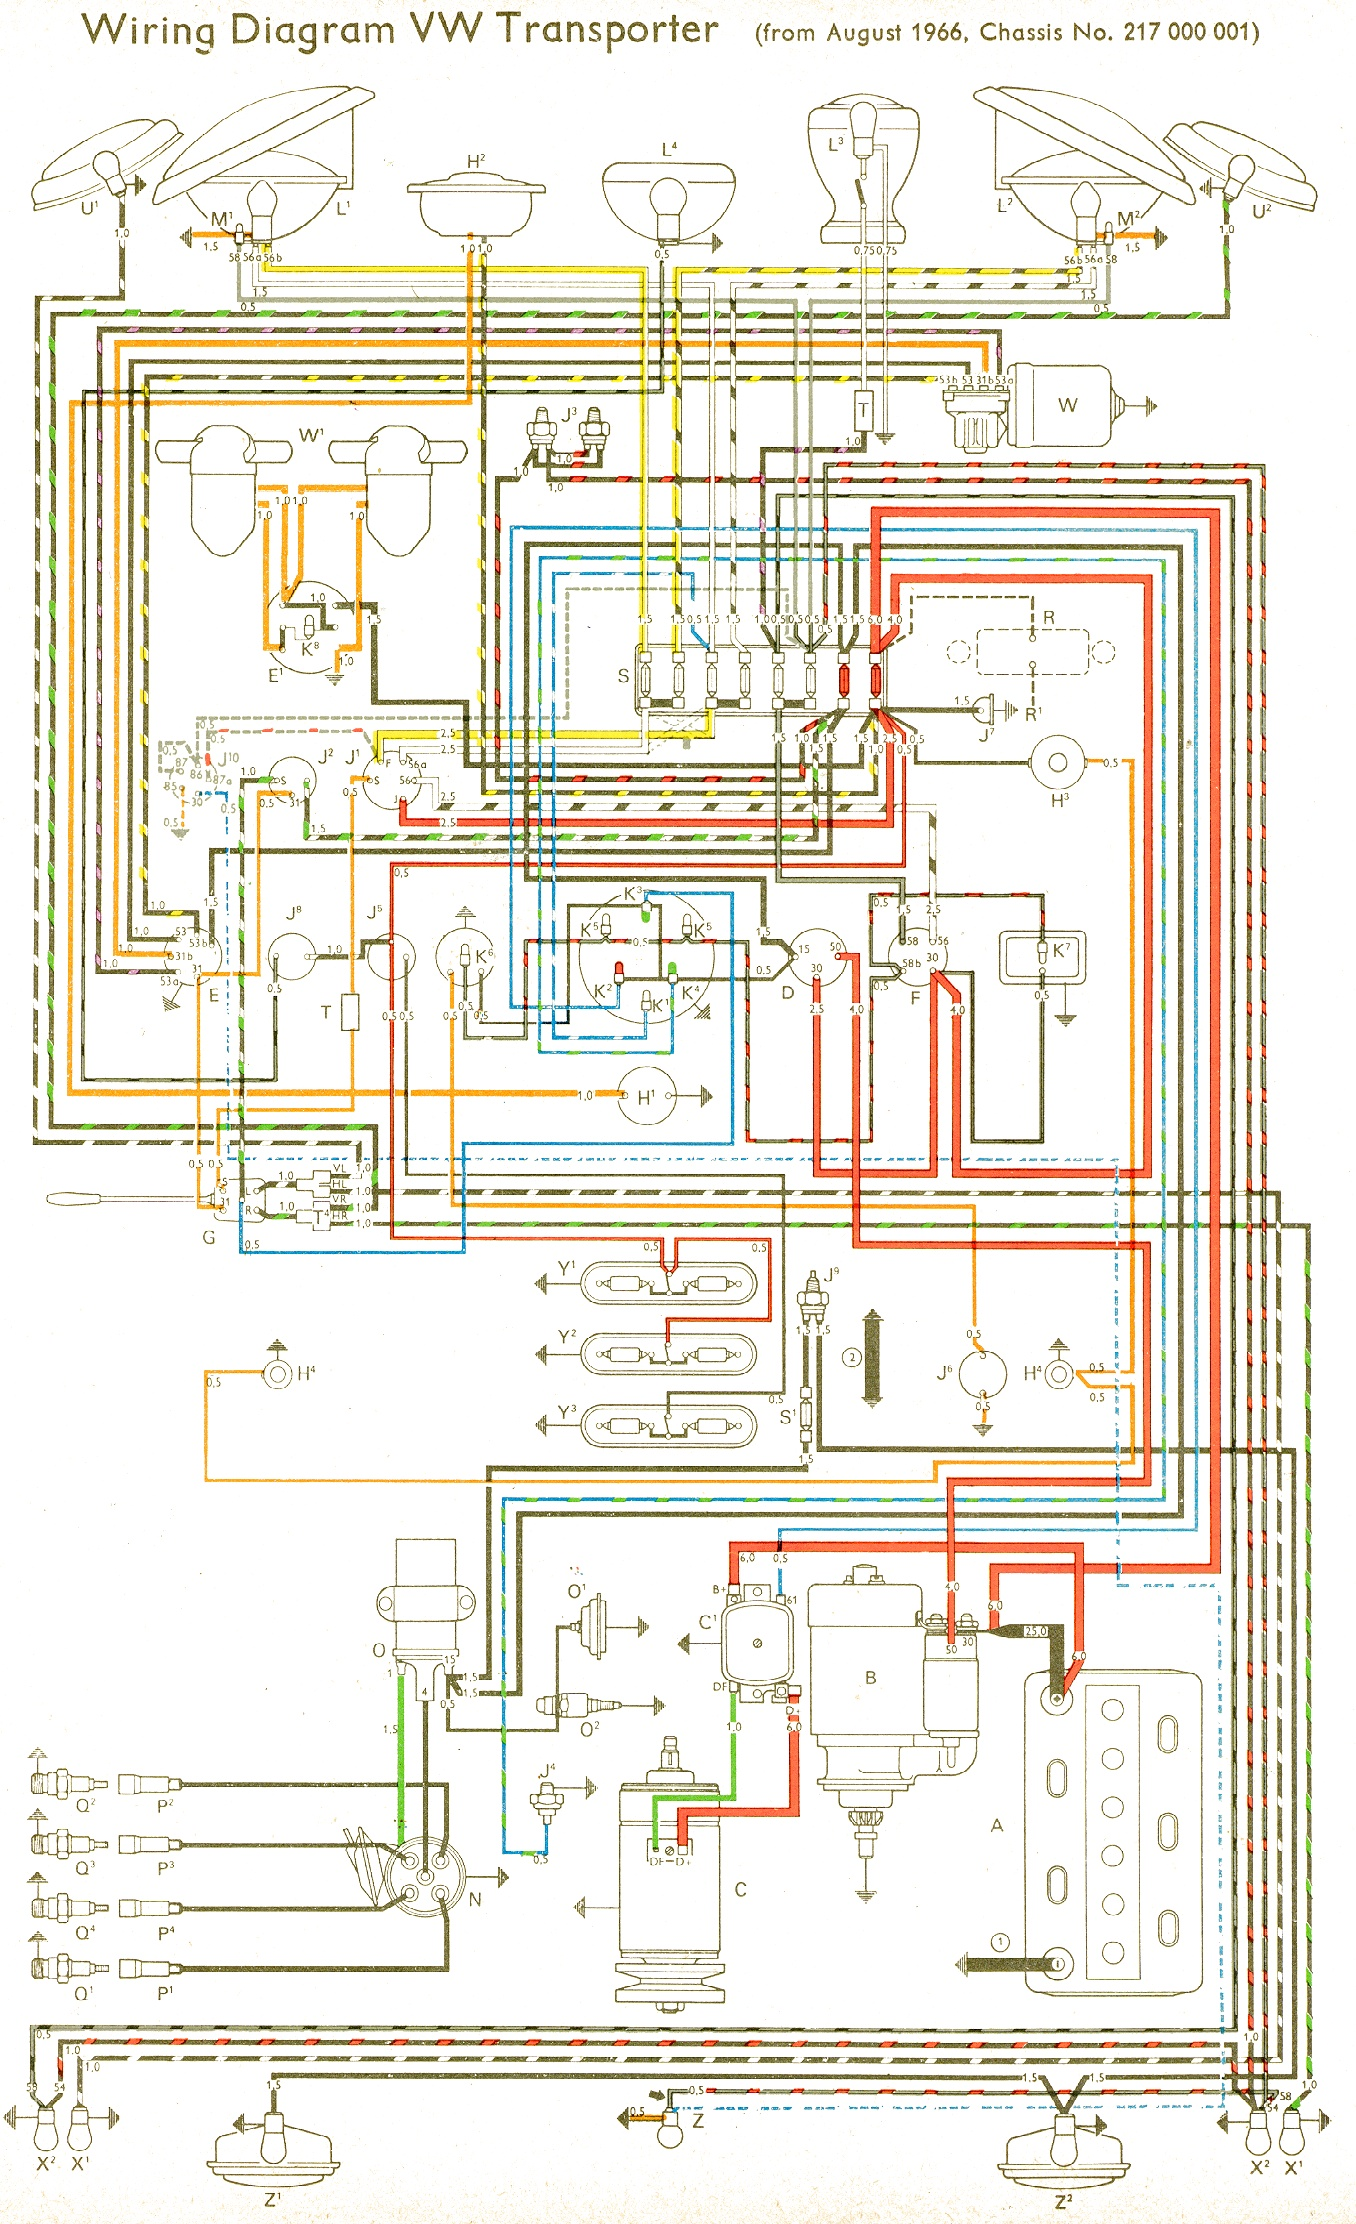 man bus wiring diagram wiring of the distribution board rcd single Wiring For Dcc Layout on ho tortoise wiring, ac wiring, trans brake wiring, msd wiring, dsl wiring, gm hei wiring, atlas turntable wiring, dc wiring, sound wiring, atlas switch wiring, o gauge track wiring, basic electrical wiring, lionel fastrack switch wiring, delta wiring, mc wiring, soundboard wiring, lionel 1033 transformer wiring, ho scale gauge wiring, train layout wiring, digital command control wiring,